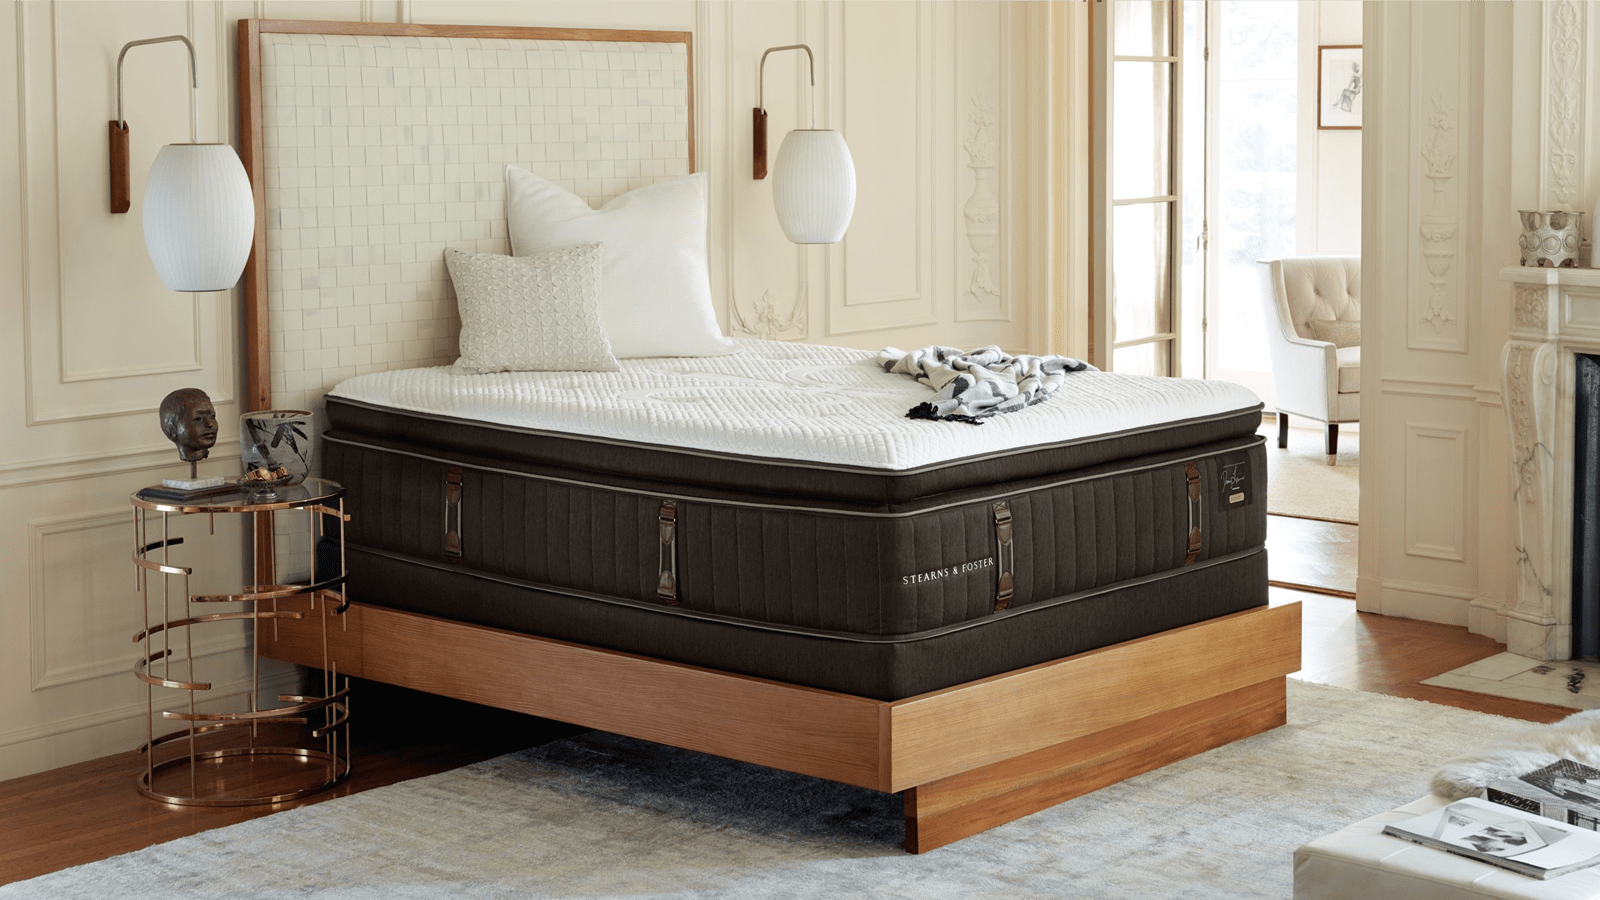 An image of a Stearns & Foster Mattress bedroom